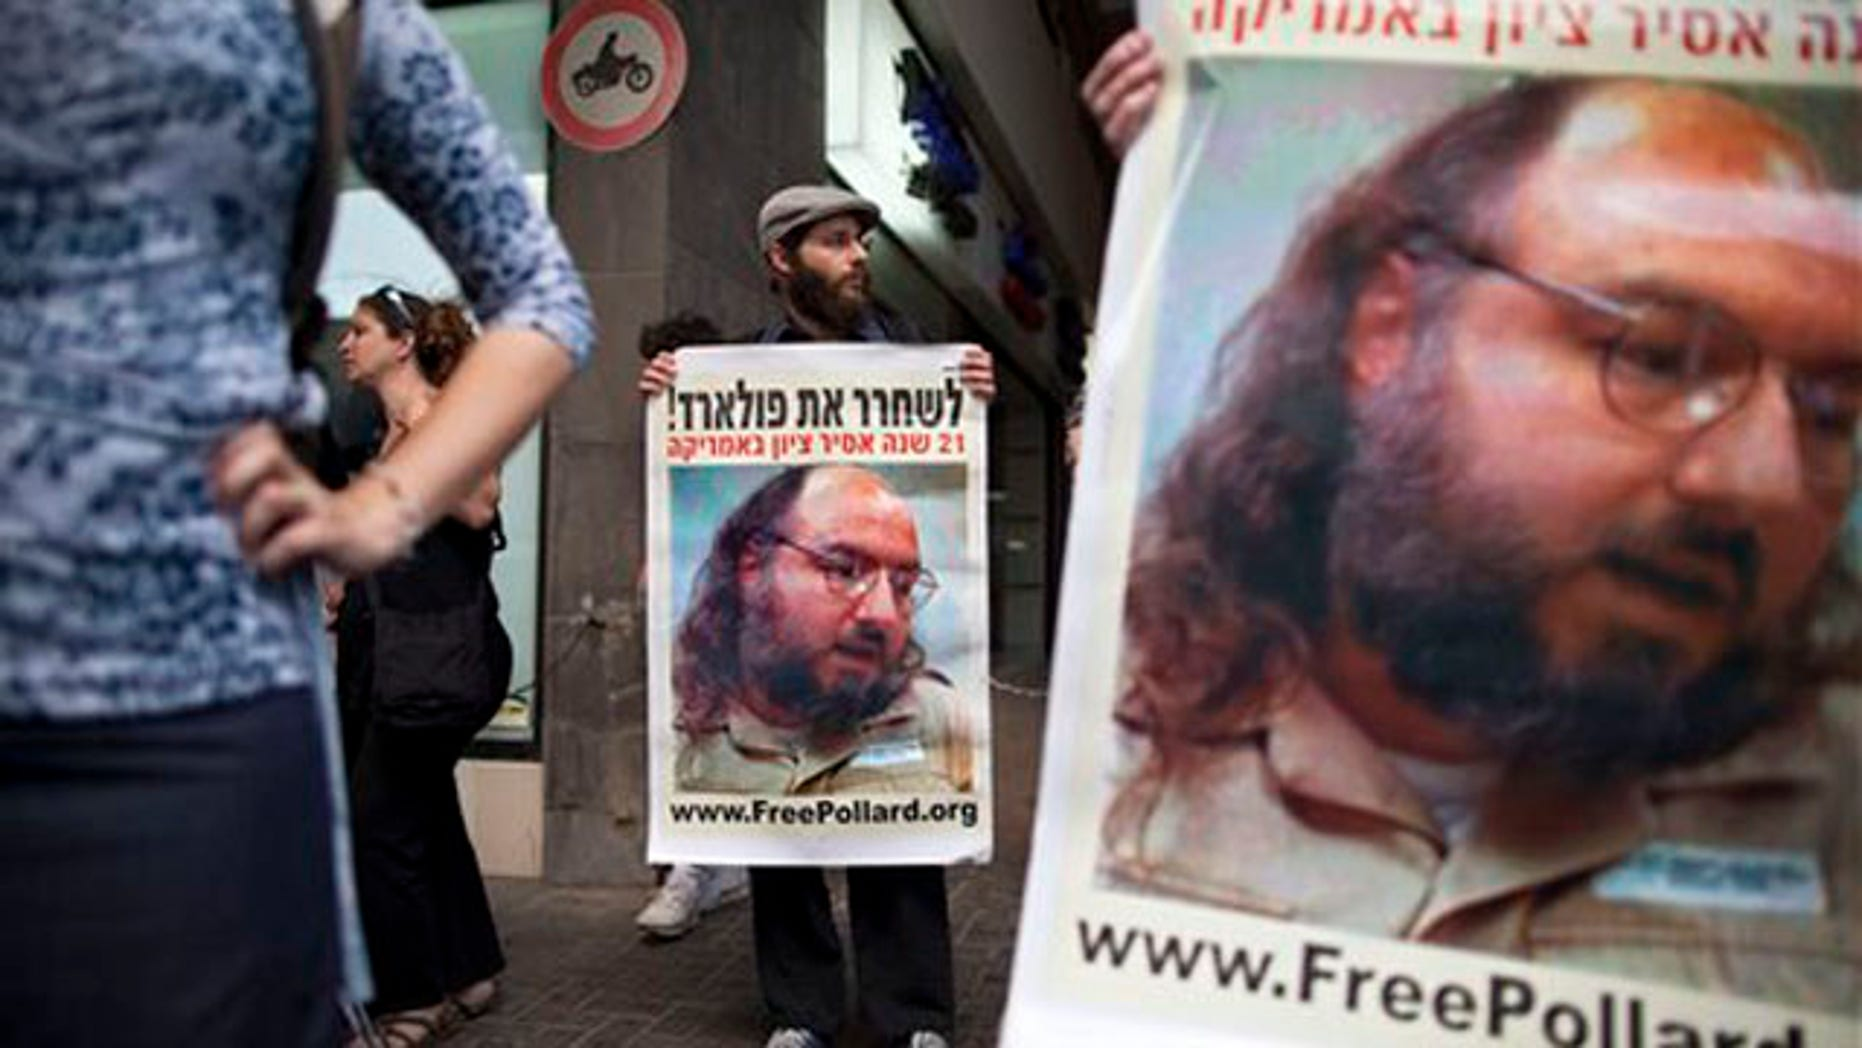 FILE: 2011: Protesters with posters demand the release of  American Jonathan Pollard jailed for life in 1987 on charges of spying on the United States, outside the U.S. embassy in Tel Aviv, Israel.